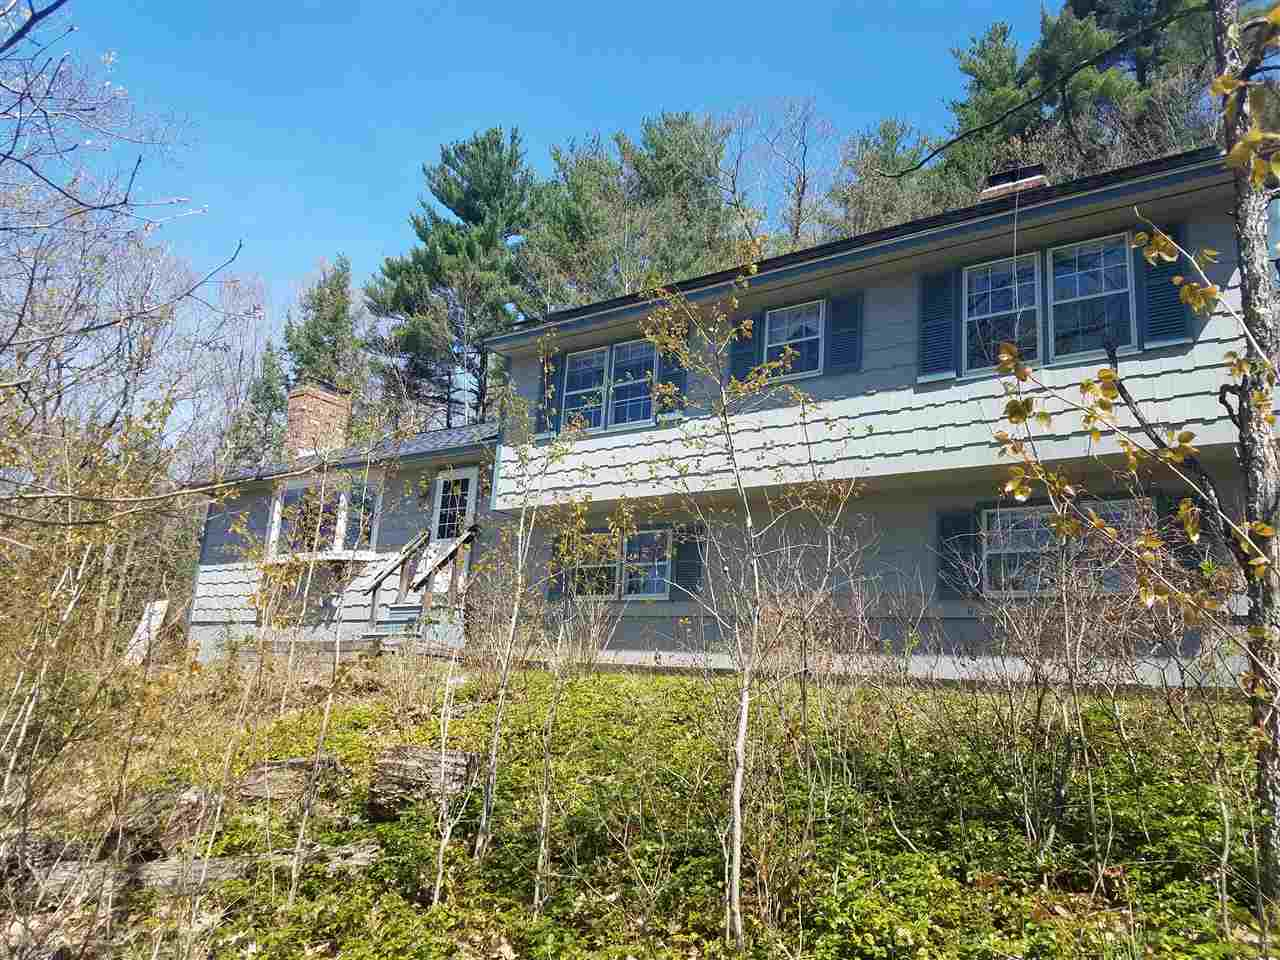 MLS 4752297: 111 Owls Hill Road, Westmoreland NH